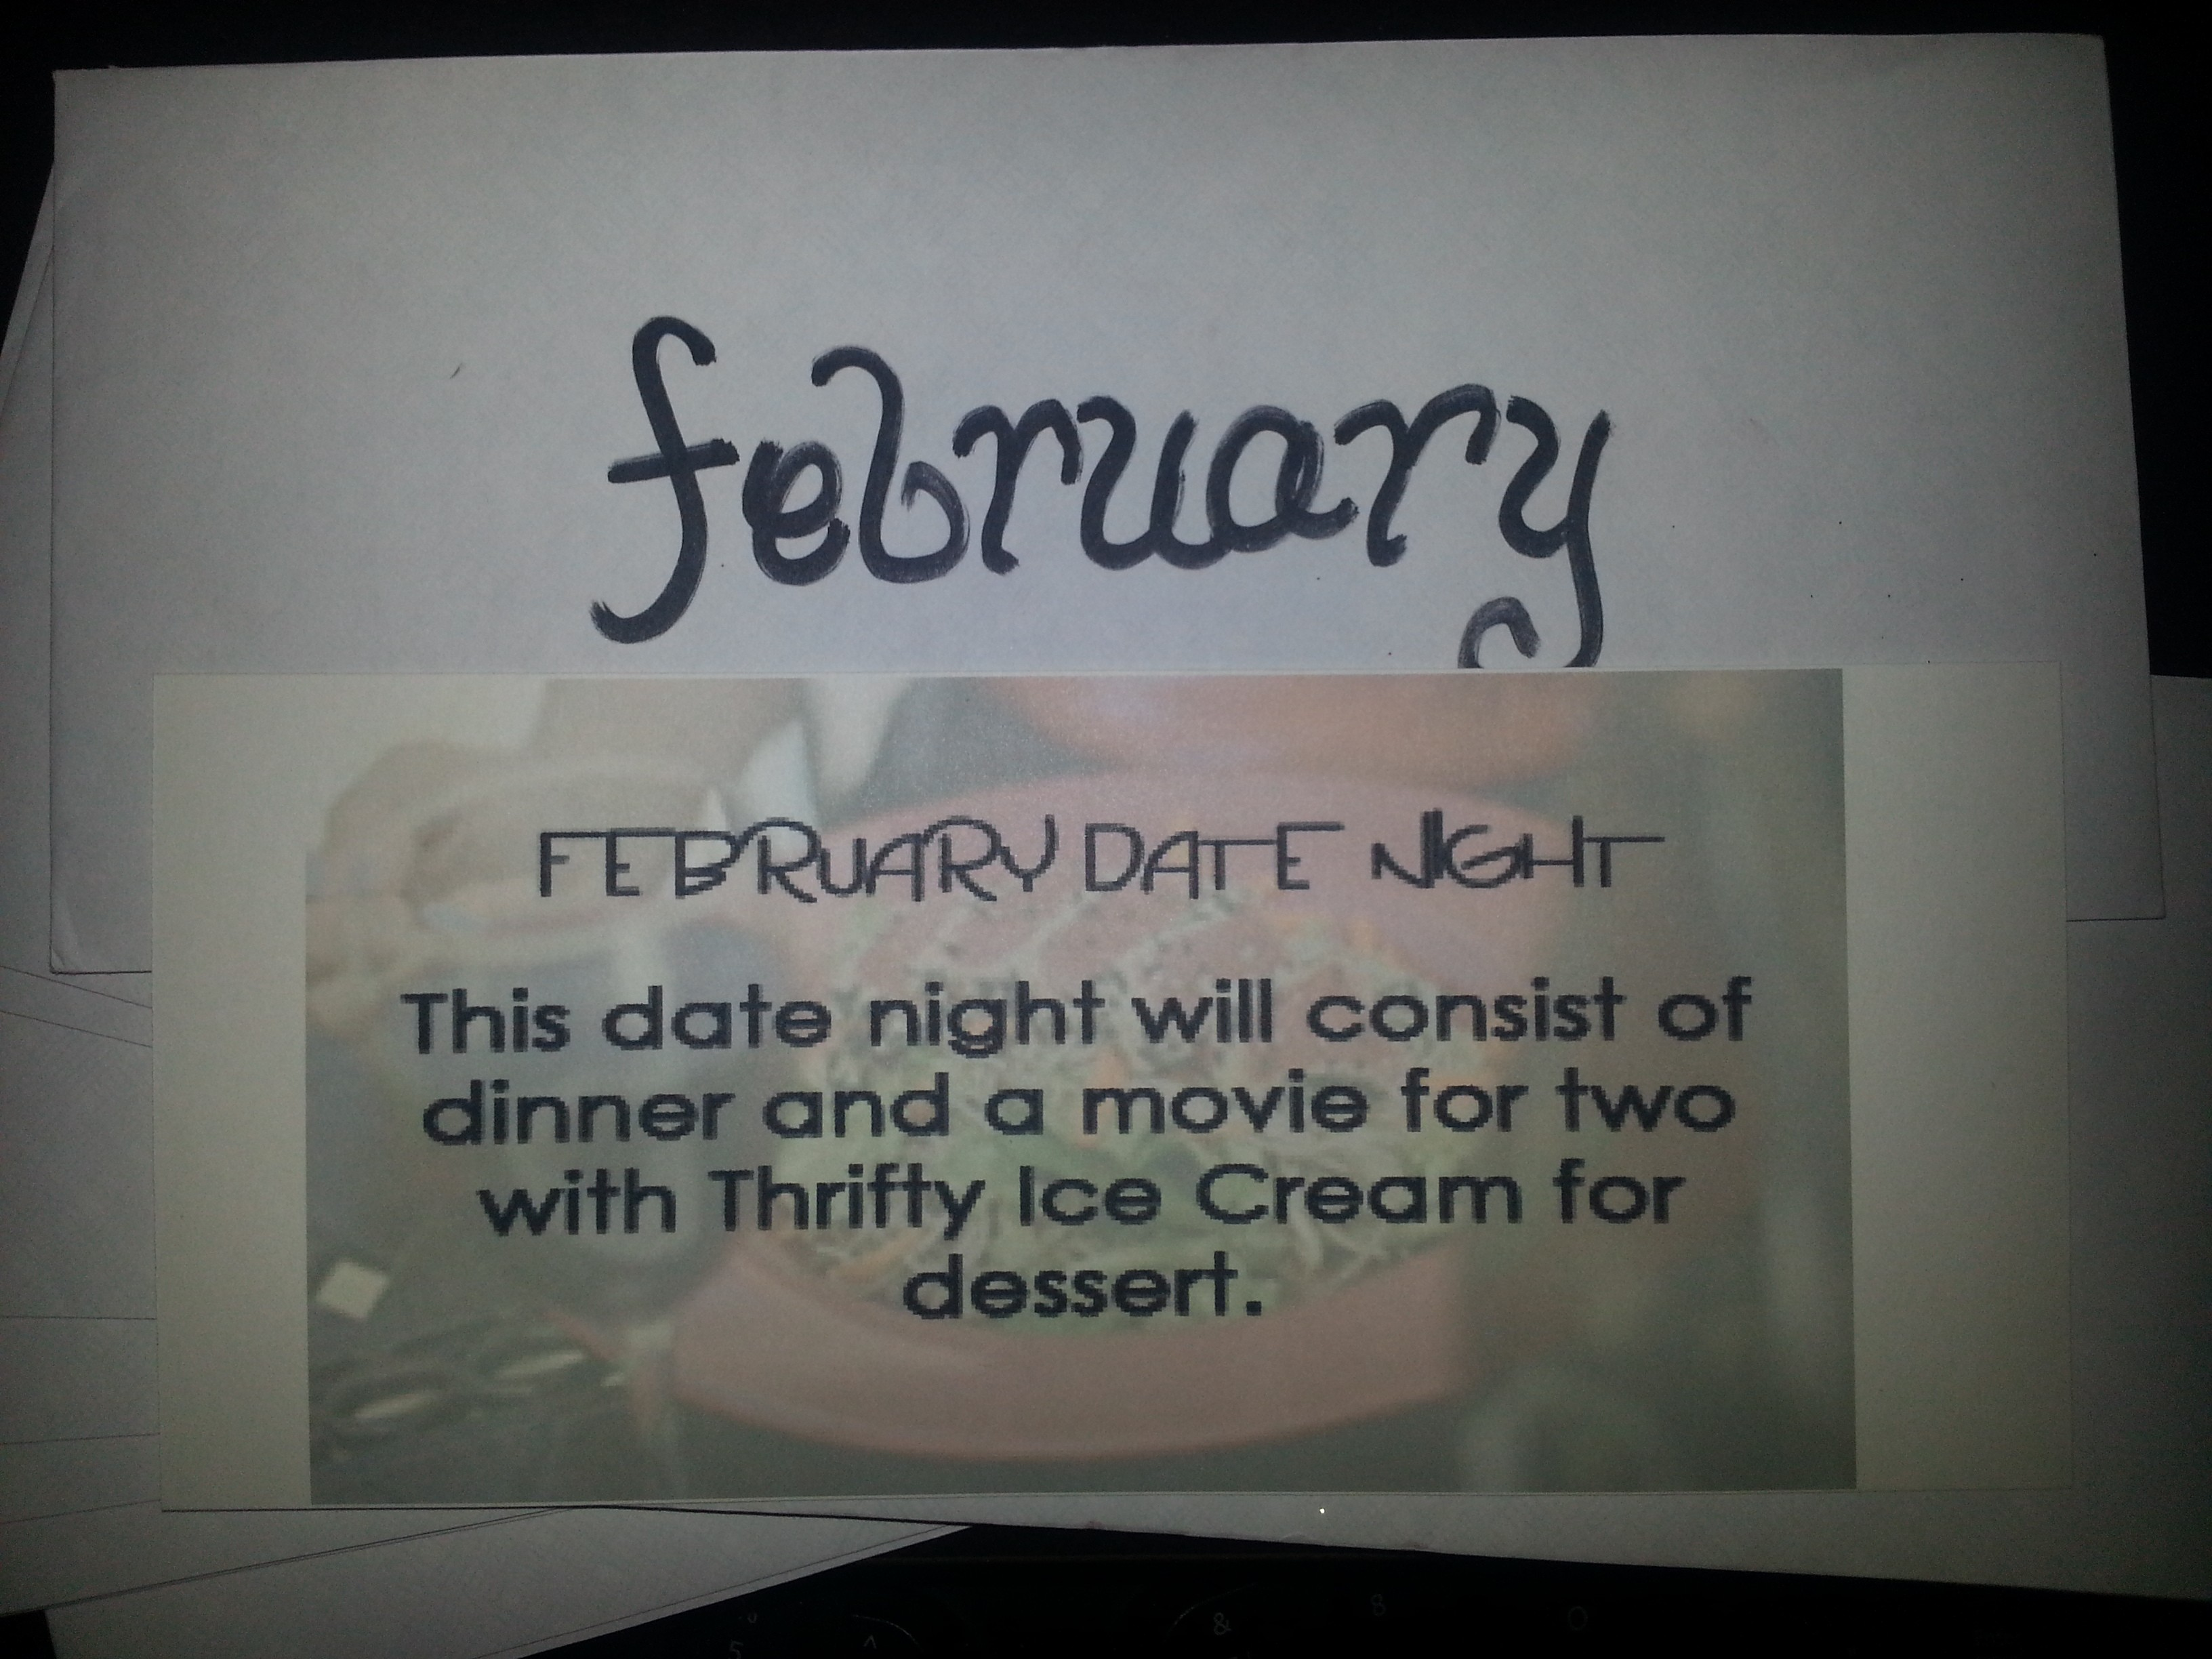 A Year of Dates gift for your husband www.wifemomhouseohmy.com